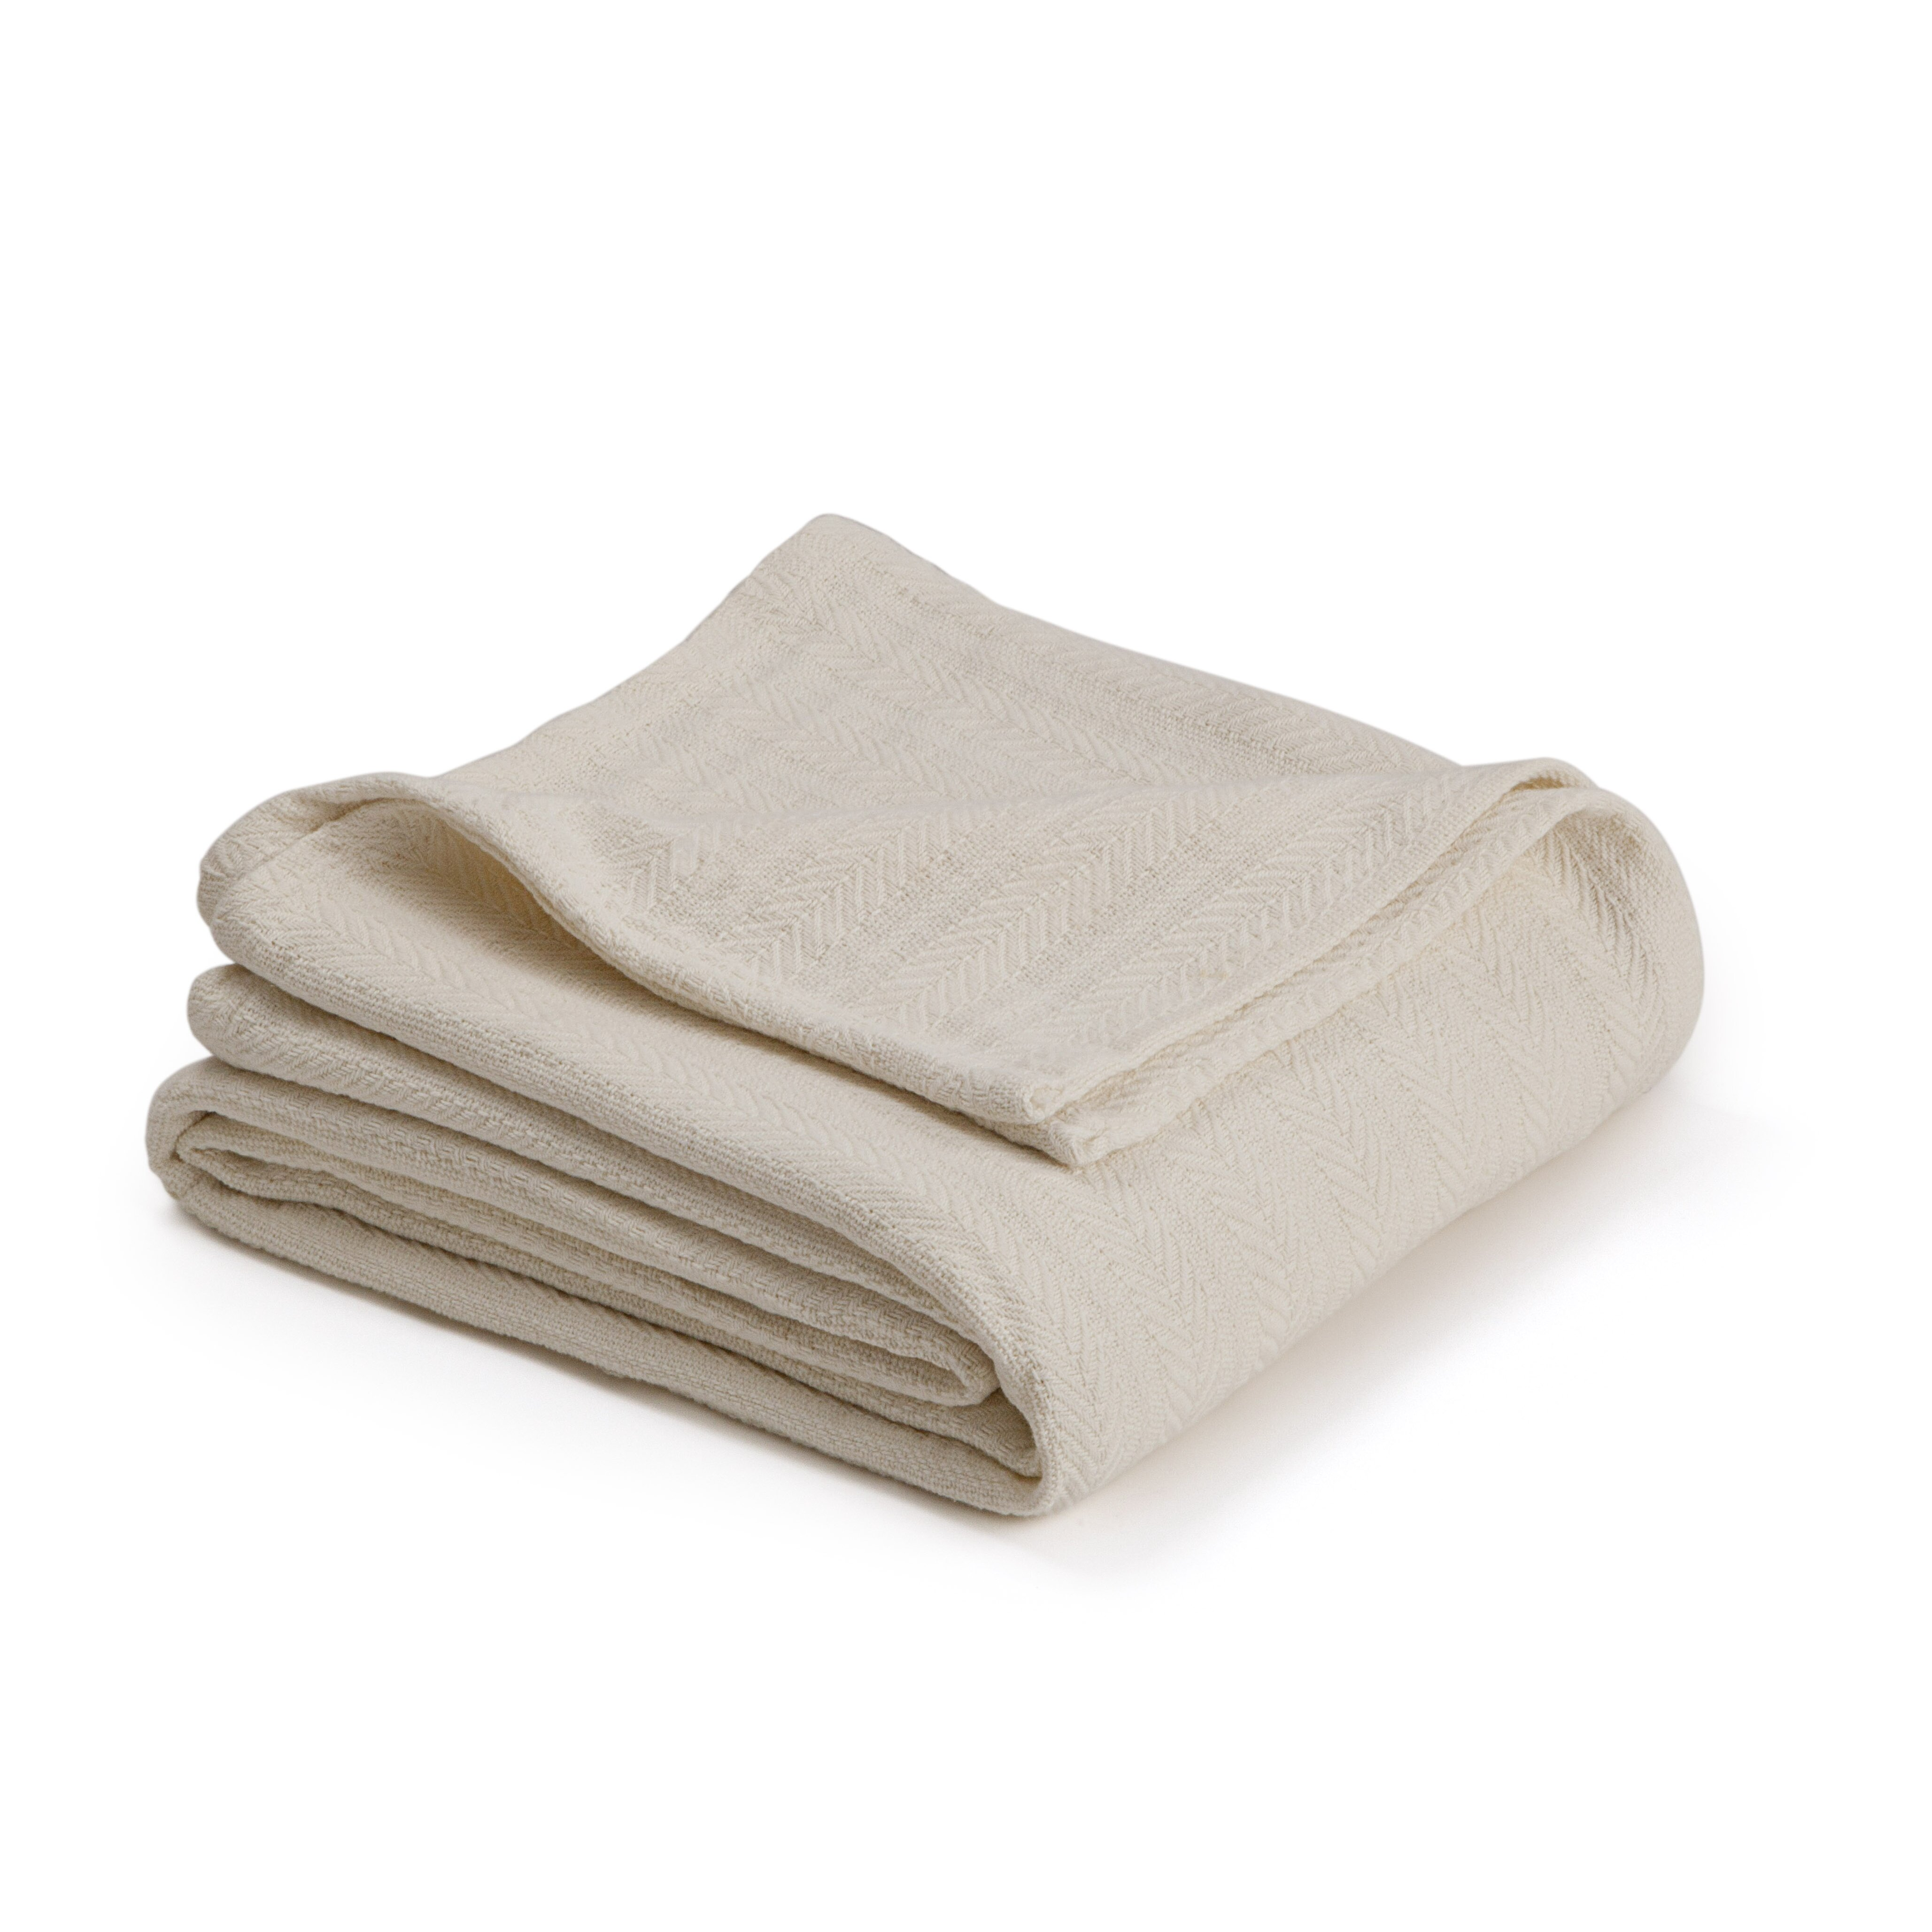 Cotton Throws For King Size Beds